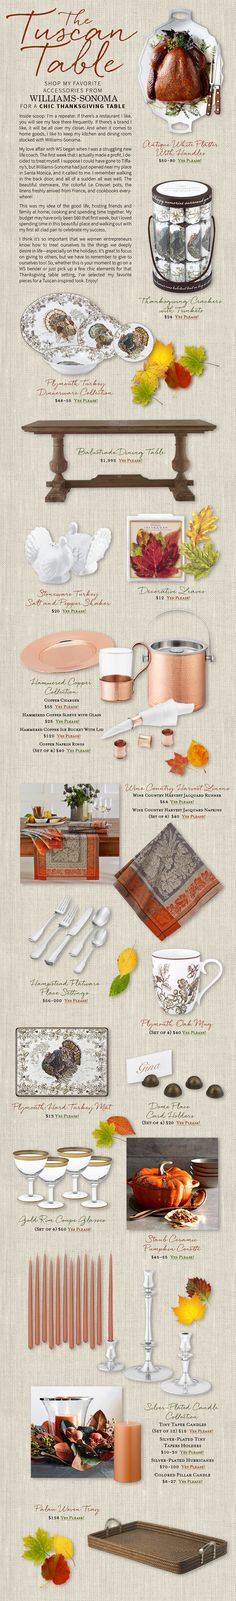 Shop my picks from williams-sonoma for a chic thanksgiving tablescape  http://www.divineliving.com/magazine/the-tuscan-table/